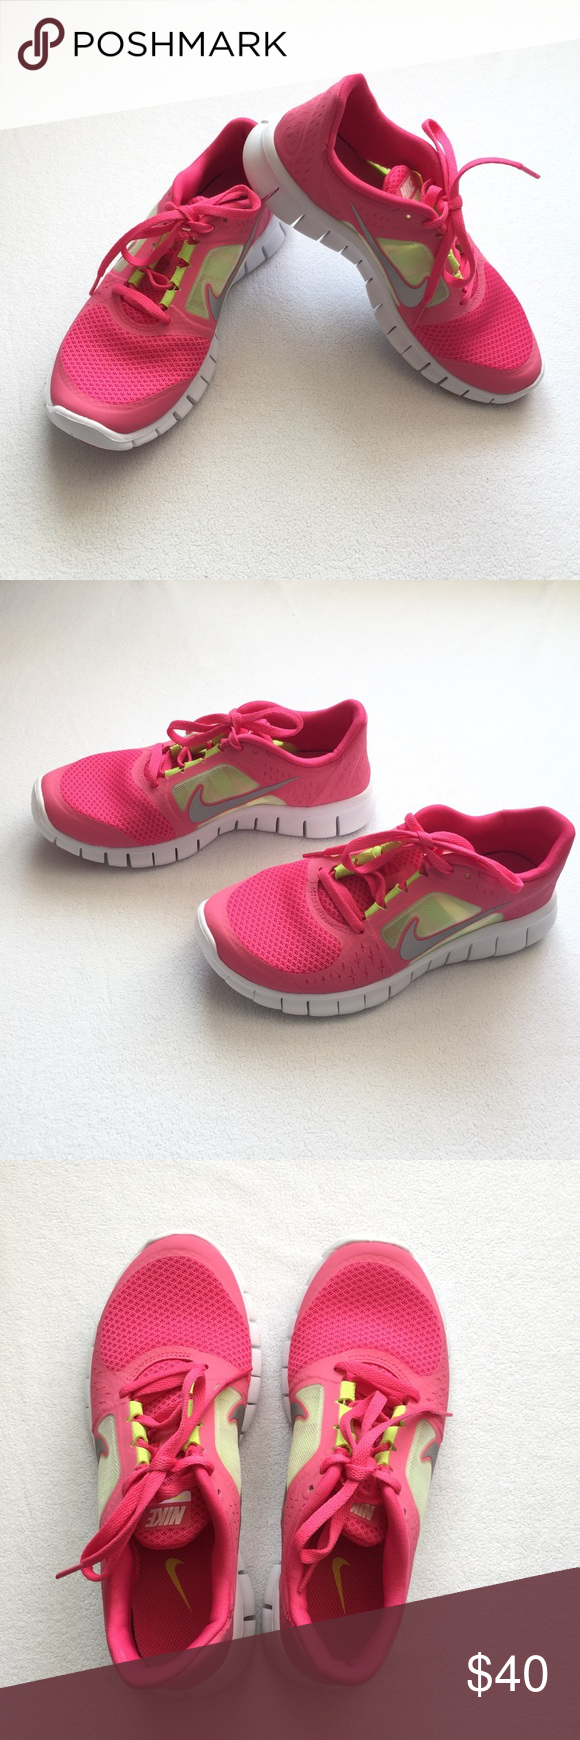 """new products ef19f 55038 Nike Free Run 3 •New in box •Spark Reflect Silver-White-Volt Color (Hot pink  and Fluorescent Yellow) •Big Girls size 5.5 (youth) •Insole   ~9.5"""" •Bundle  and ..."""